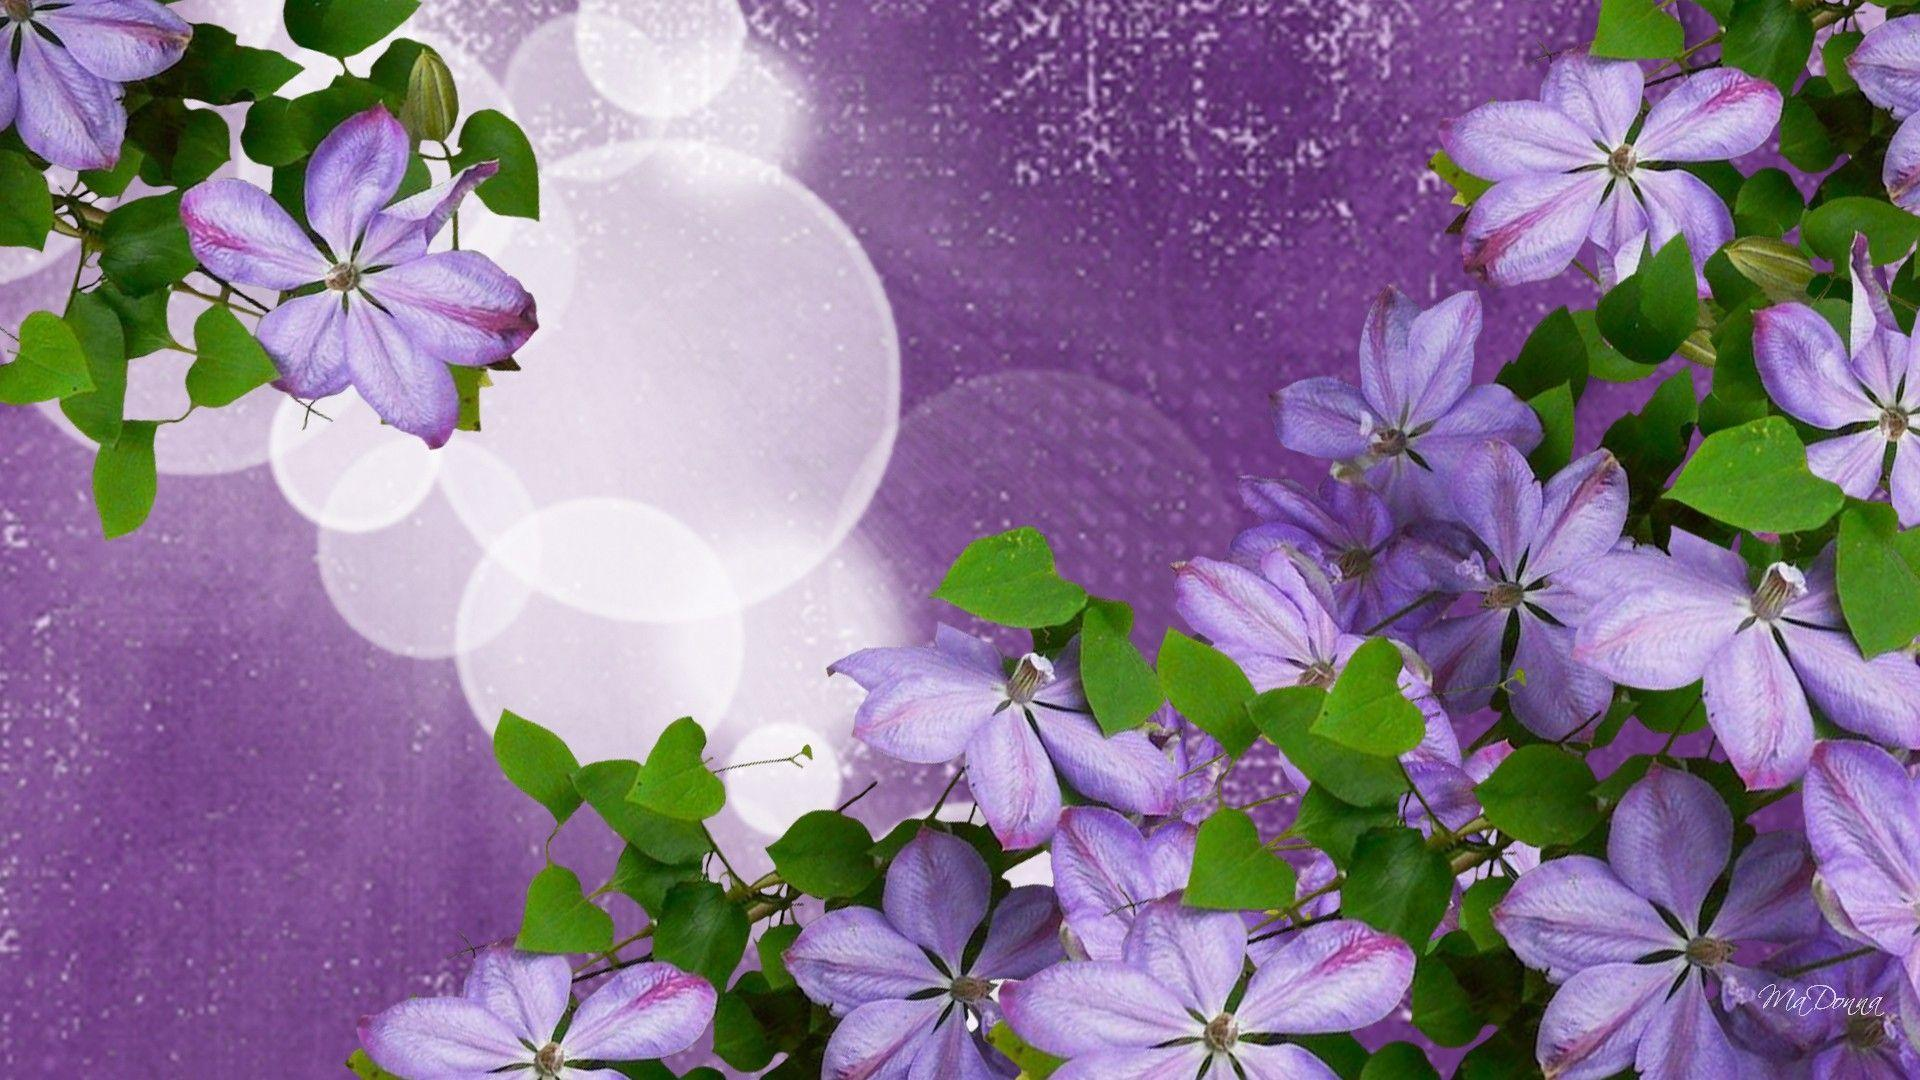 lavender flowers wallpapers 2560x1440 - photo #12